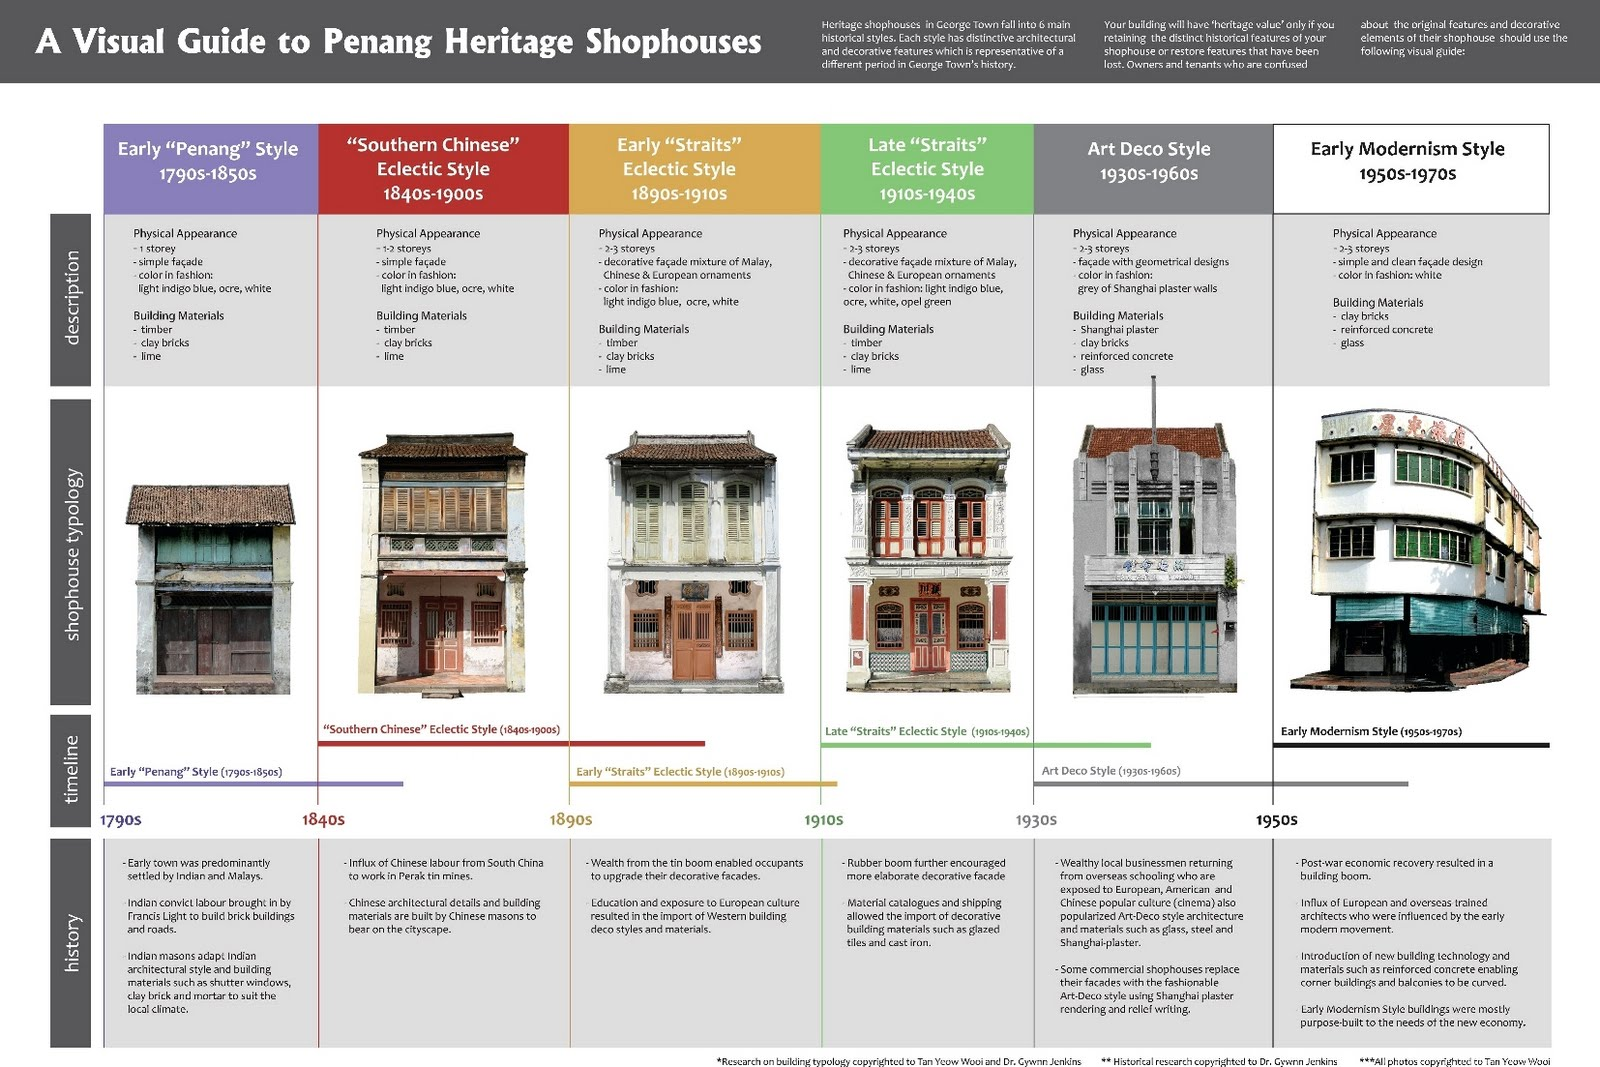 Local ecologist penang shophouse internal courtyard for Architectural styles guide